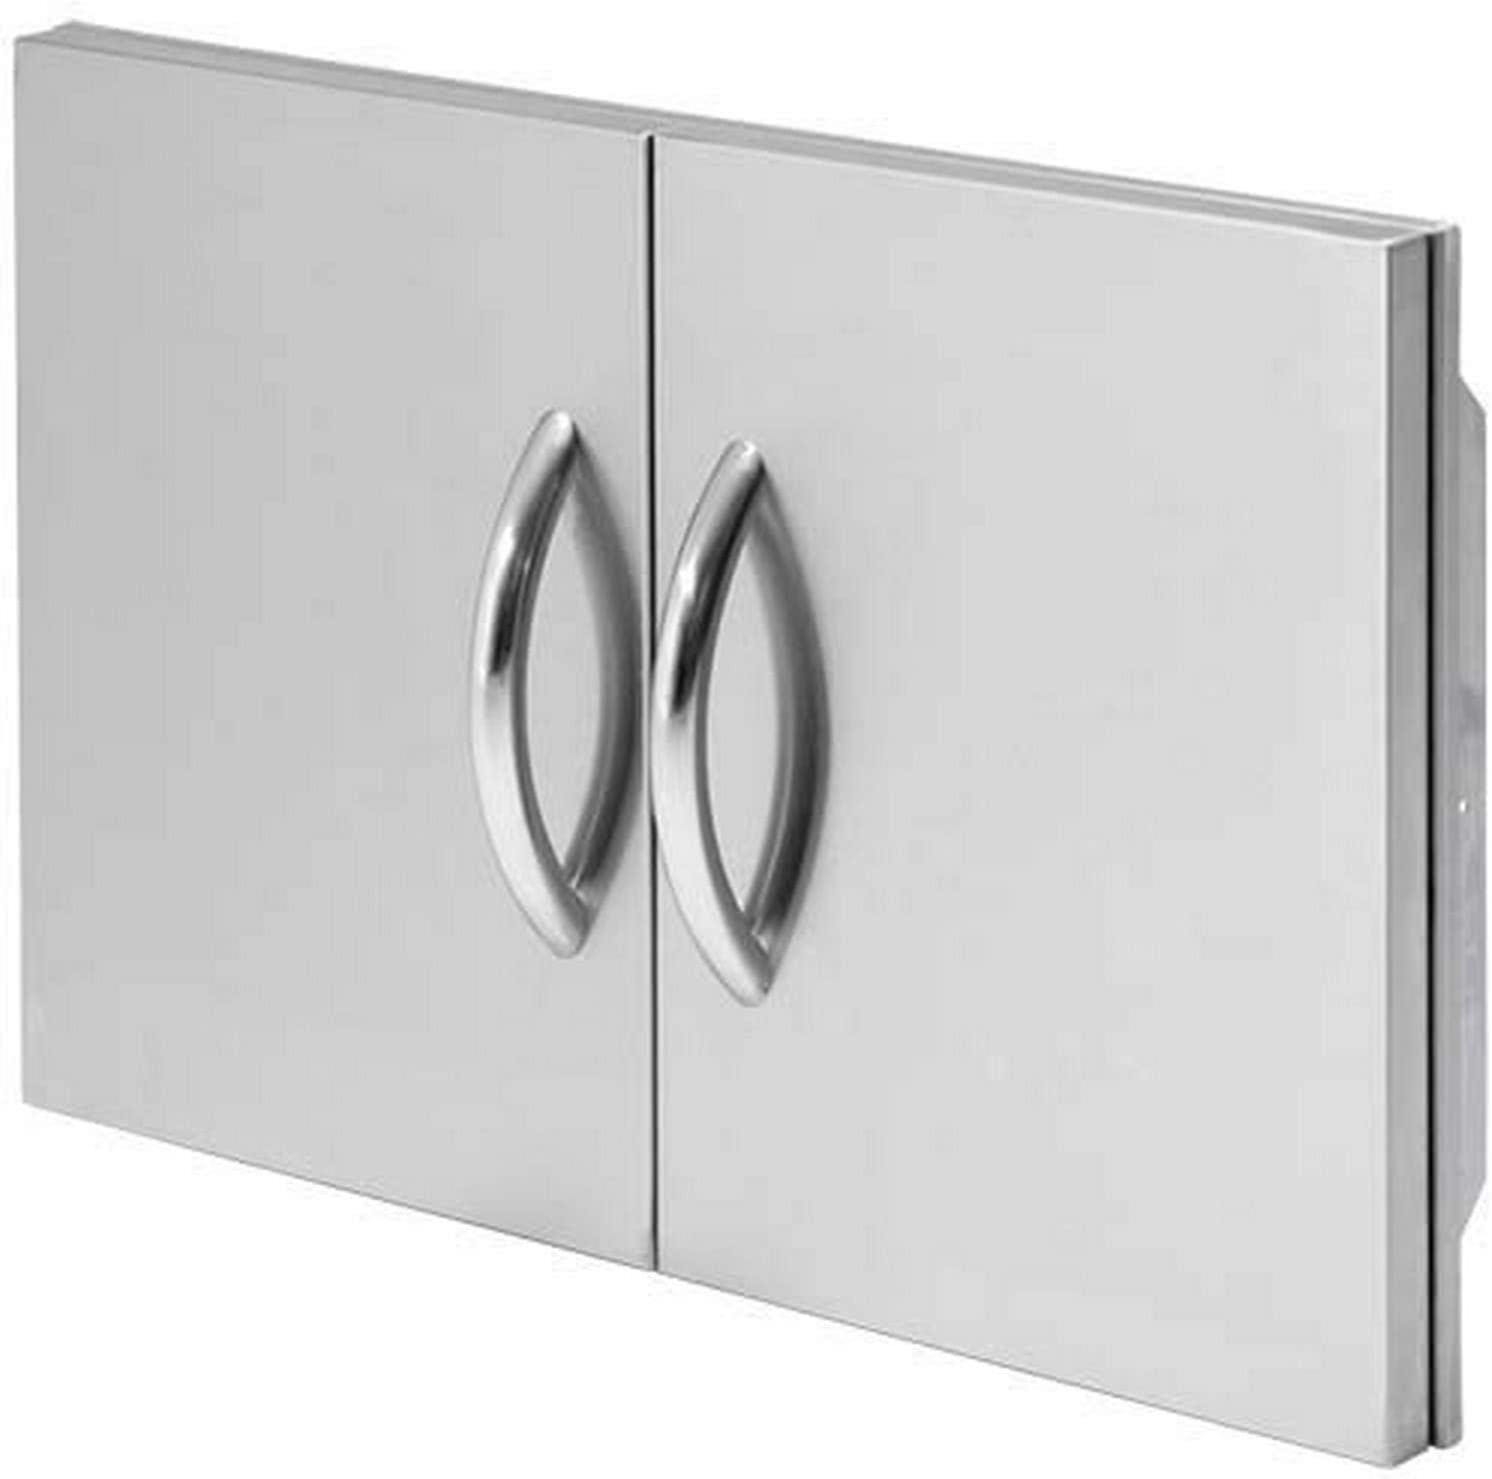 Cal Flame 089245002543 30 Outdoor Double Access Door, Stainless Steel